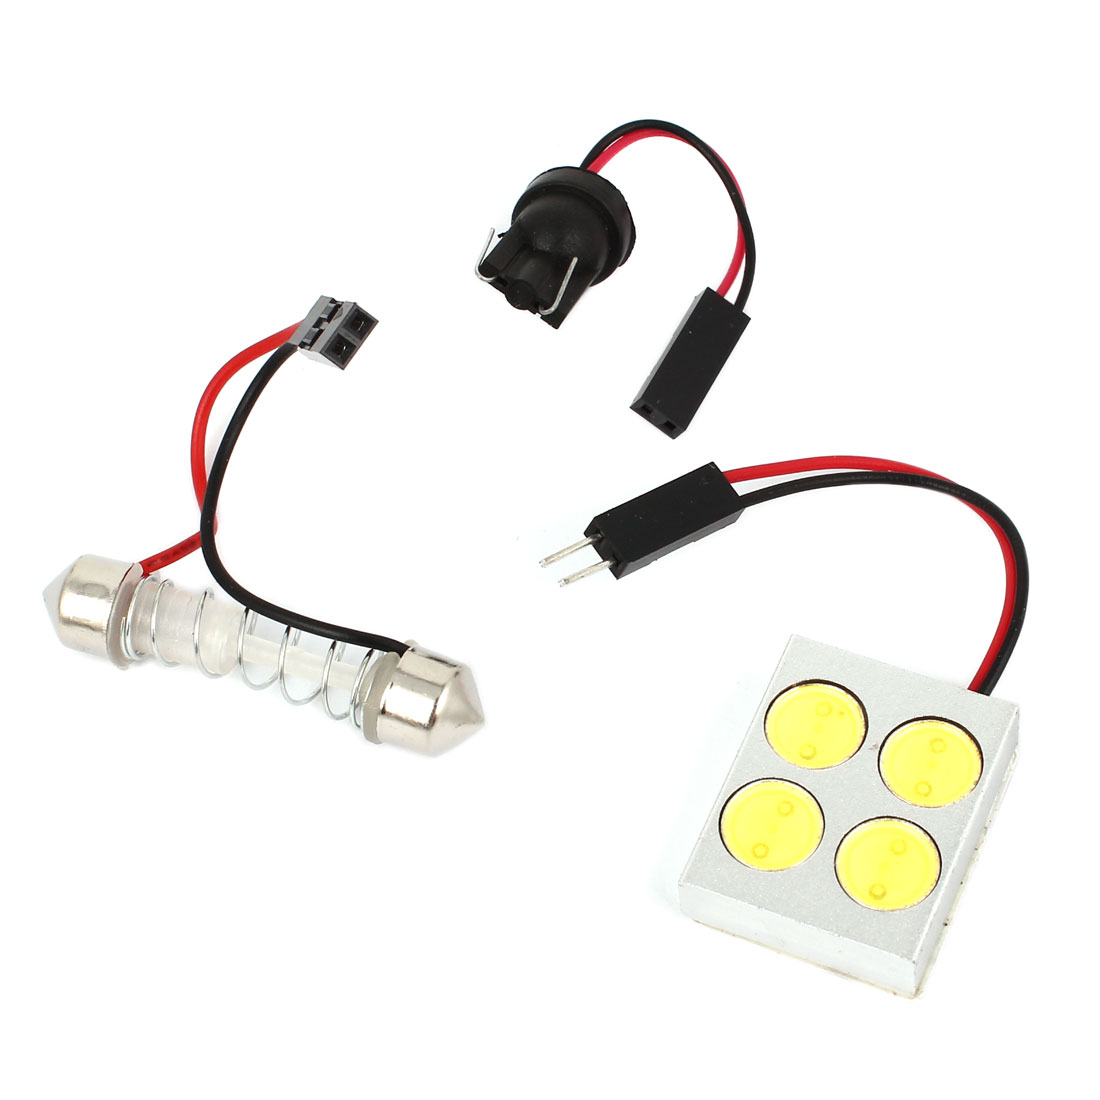 T10 Festoon Adapter 4 SMD LED White Car Interior Dome Light Lamp 4W Internal